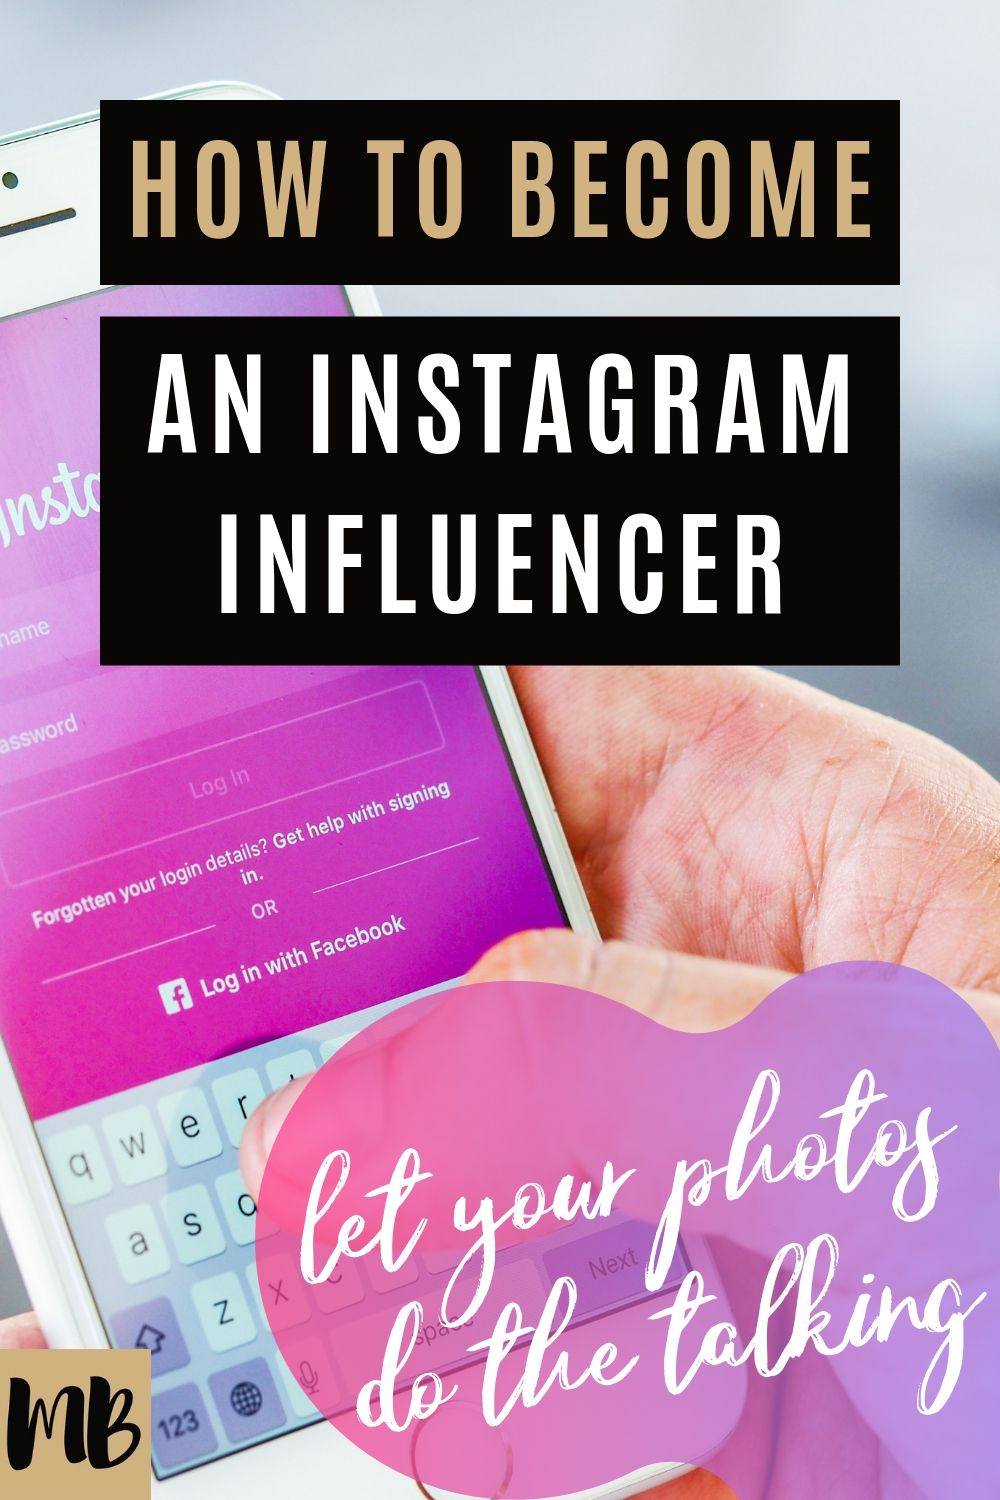 How to become an instagram influencer and the best ways to make money